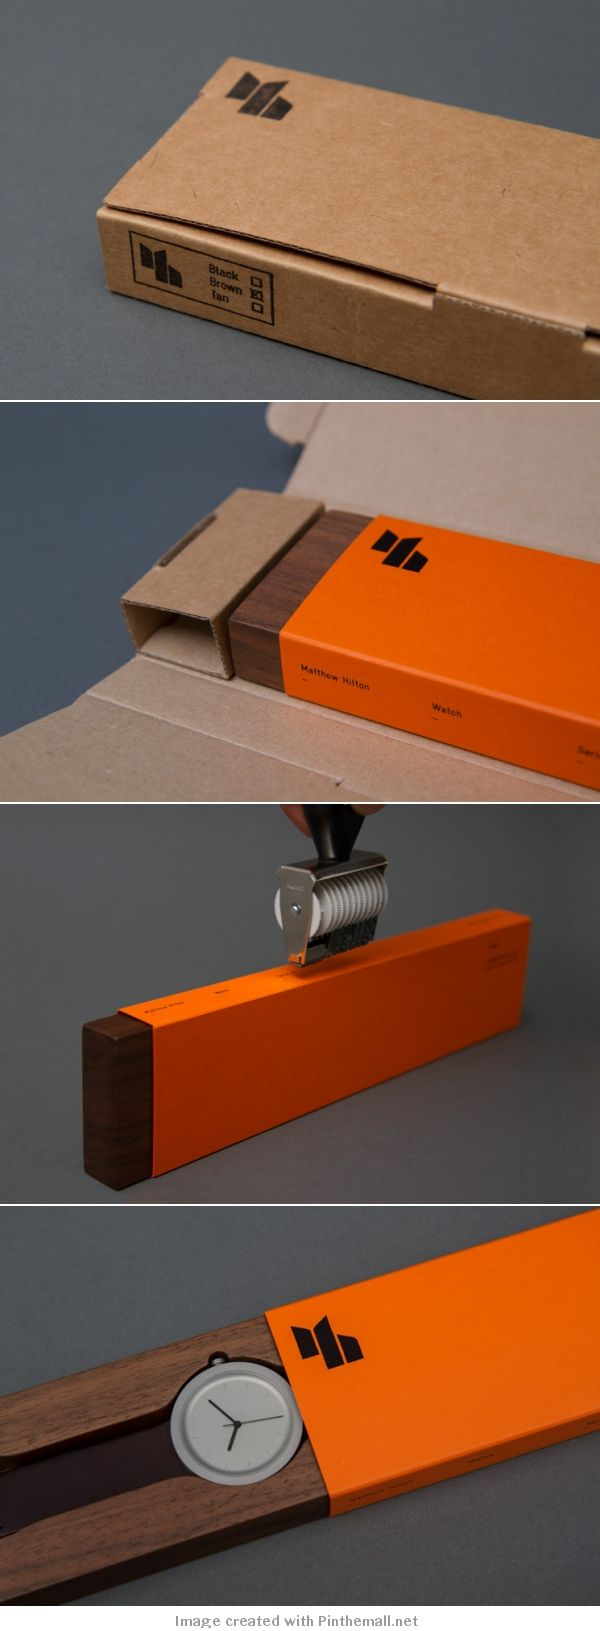 Watch packaging | Matthew Hilton | BP&O... - a grouped images pin by Pinthemall.net - Pin Them All